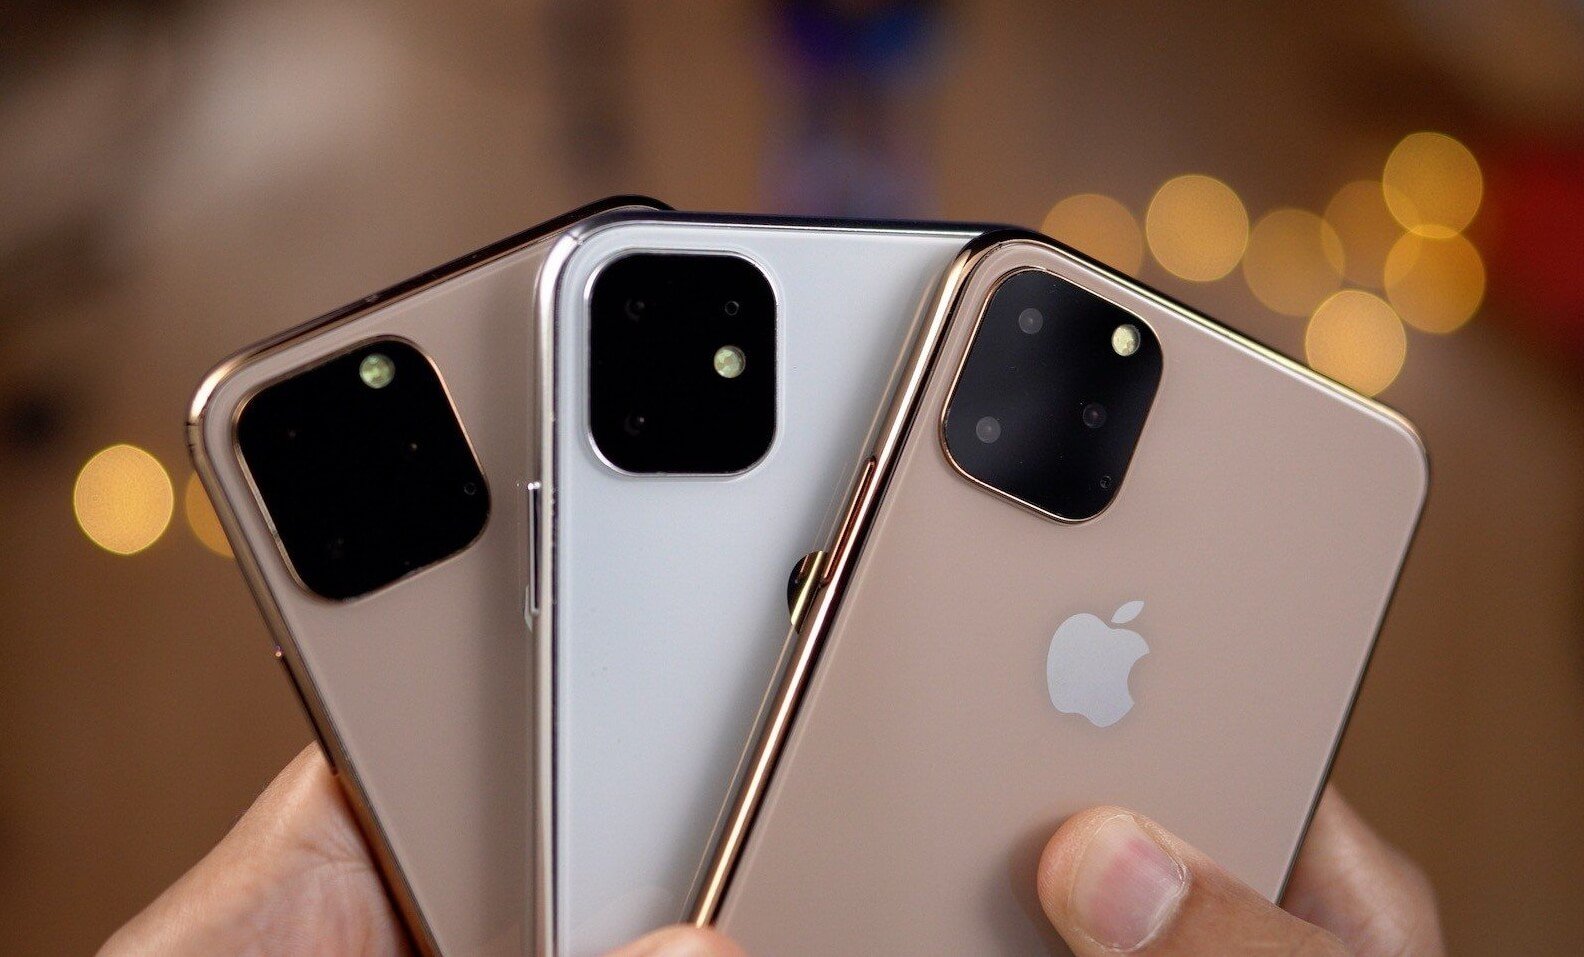 Keynote Apple du 10 septembre 2019 : les nouveautés attendues (iPhone 11, Apple Watch Series 5, iPad Pro) - PhonAndroid.com